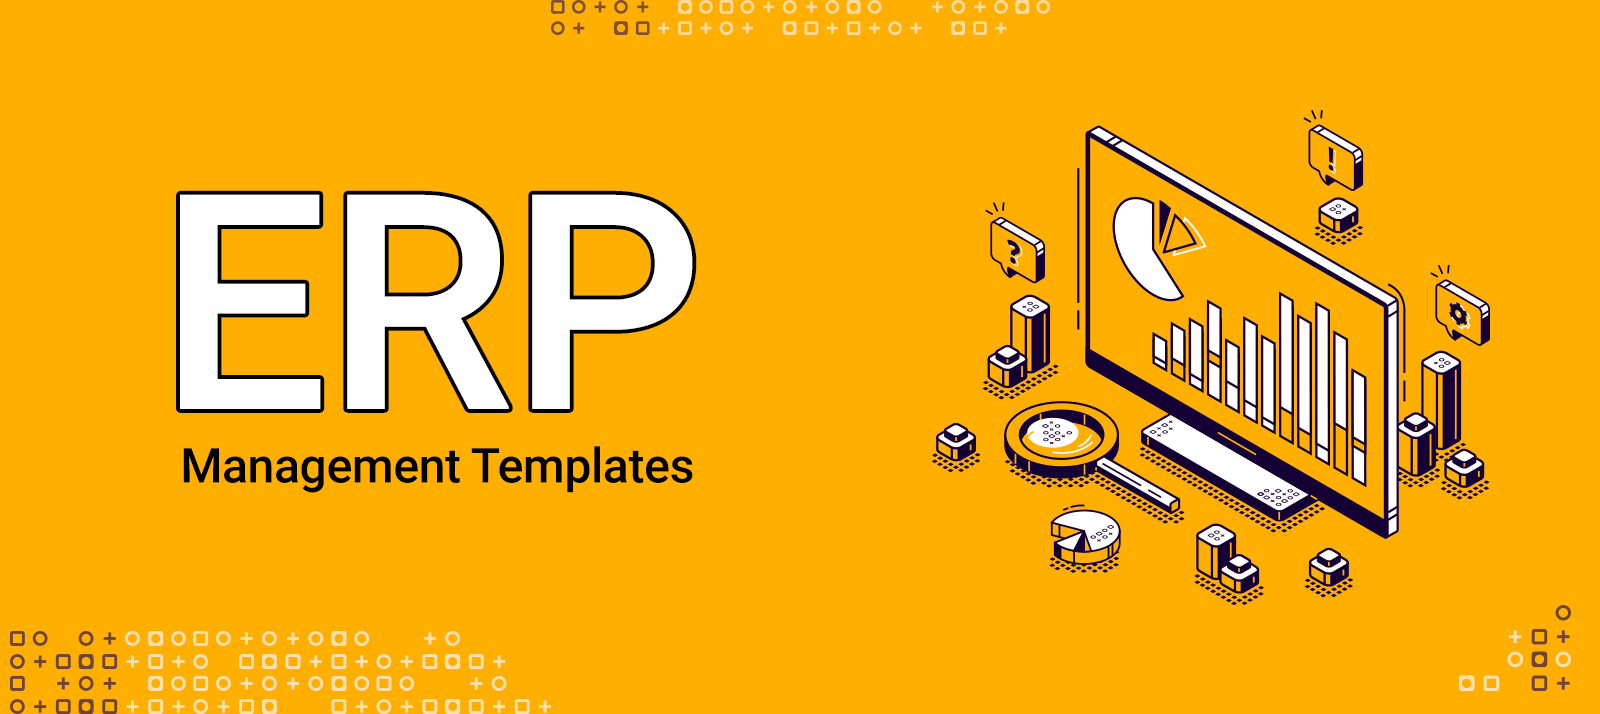 Top 10 ERP Management Dashboard Templates For Your Next Project